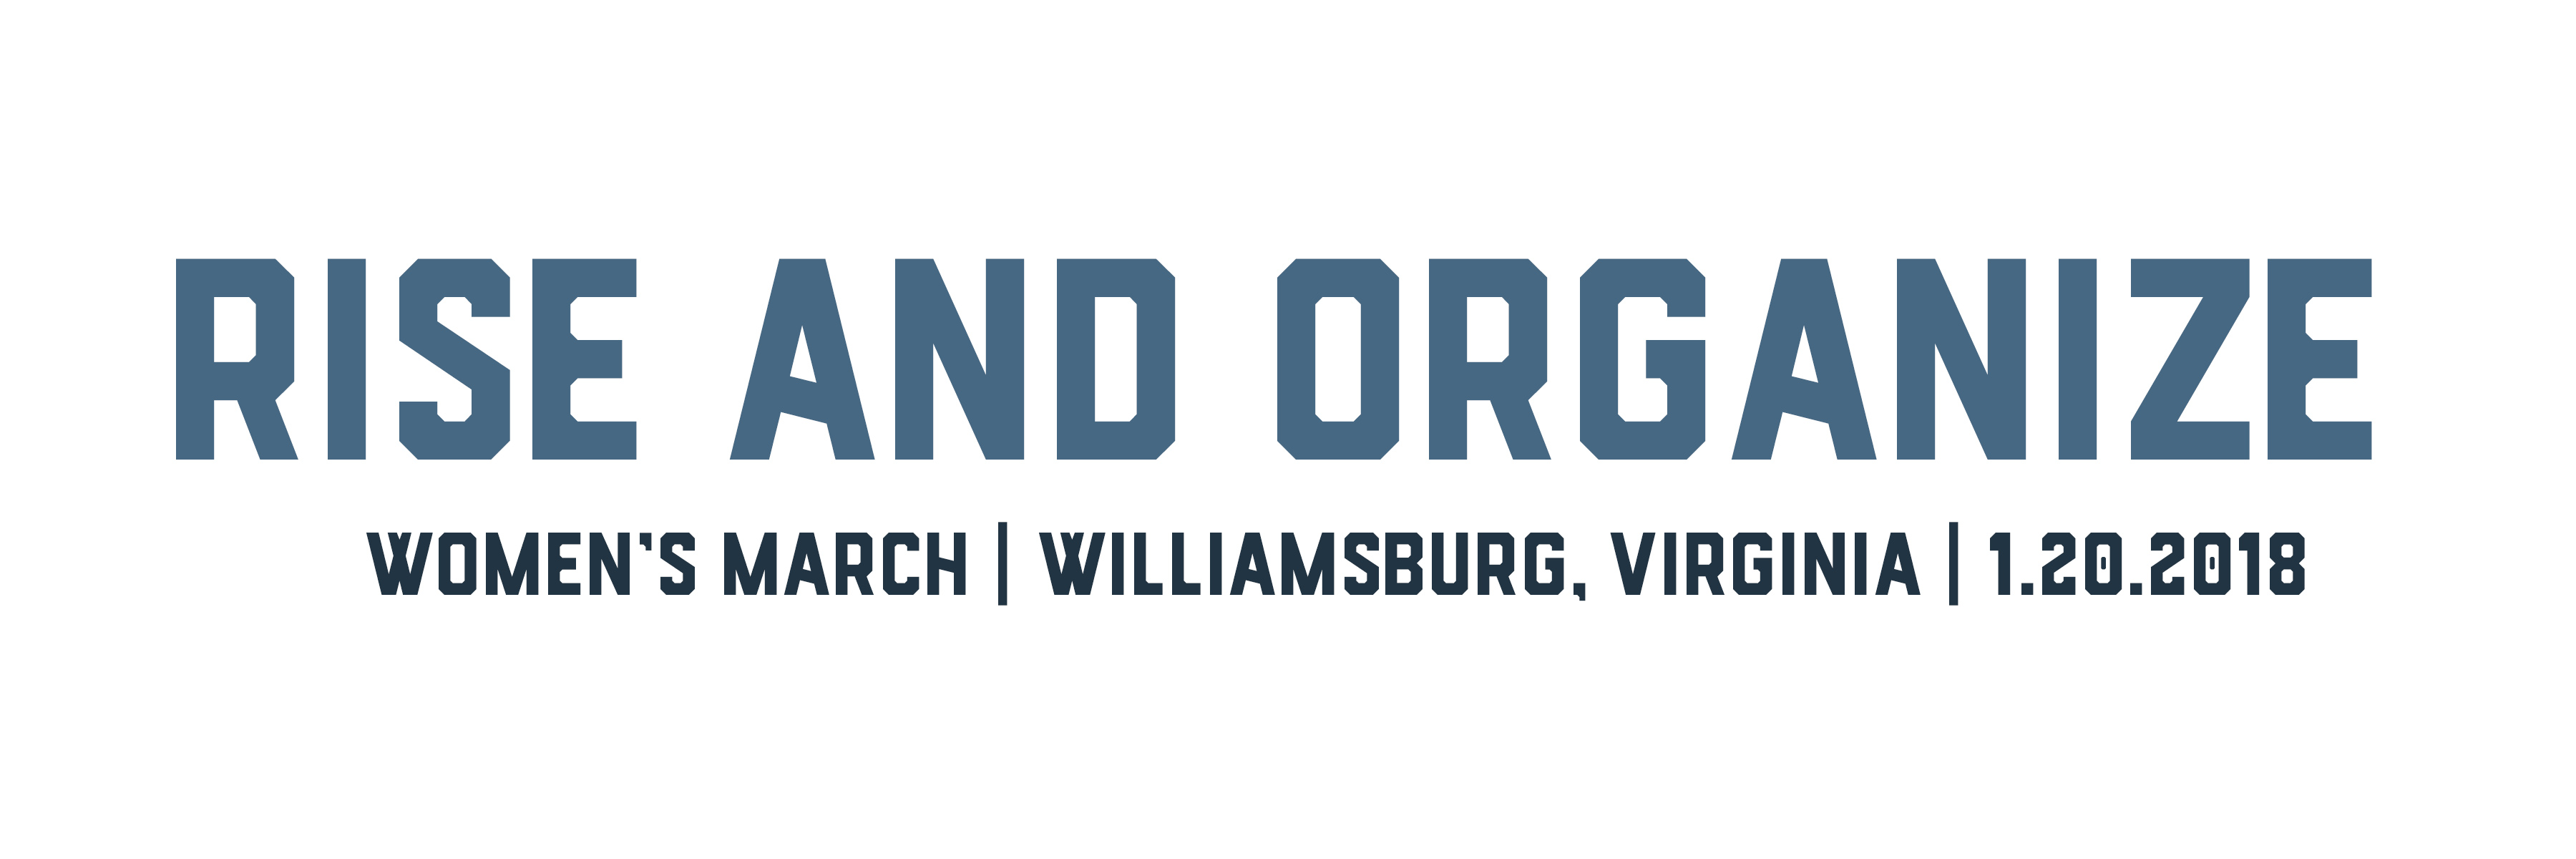 Rise_and_organize_banner_018